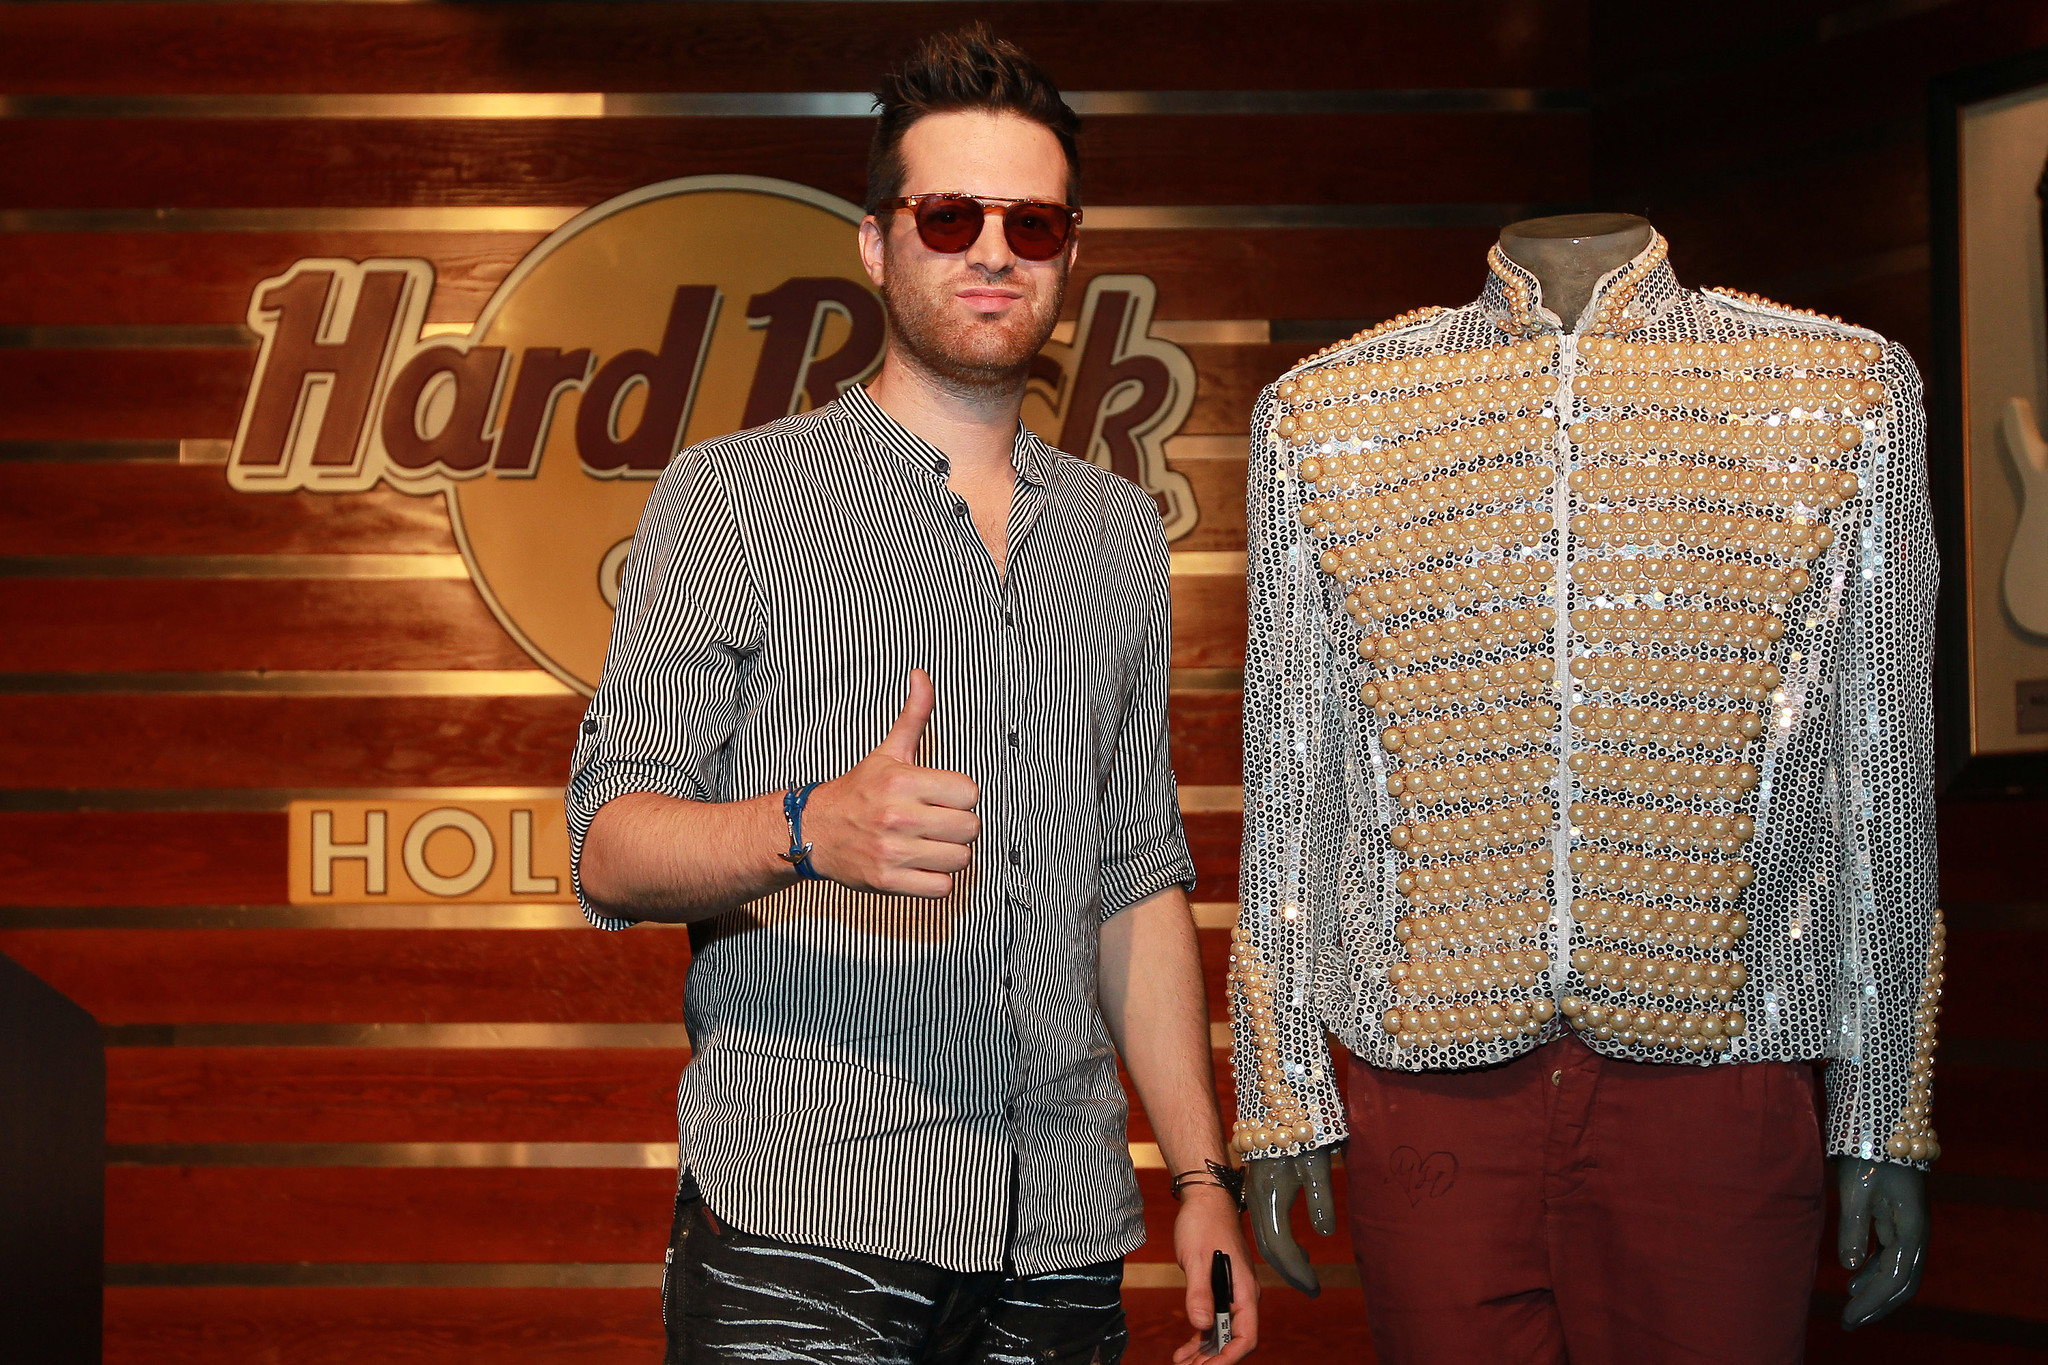 Celeb-spotting around South Florida - Mayer Hawthorne